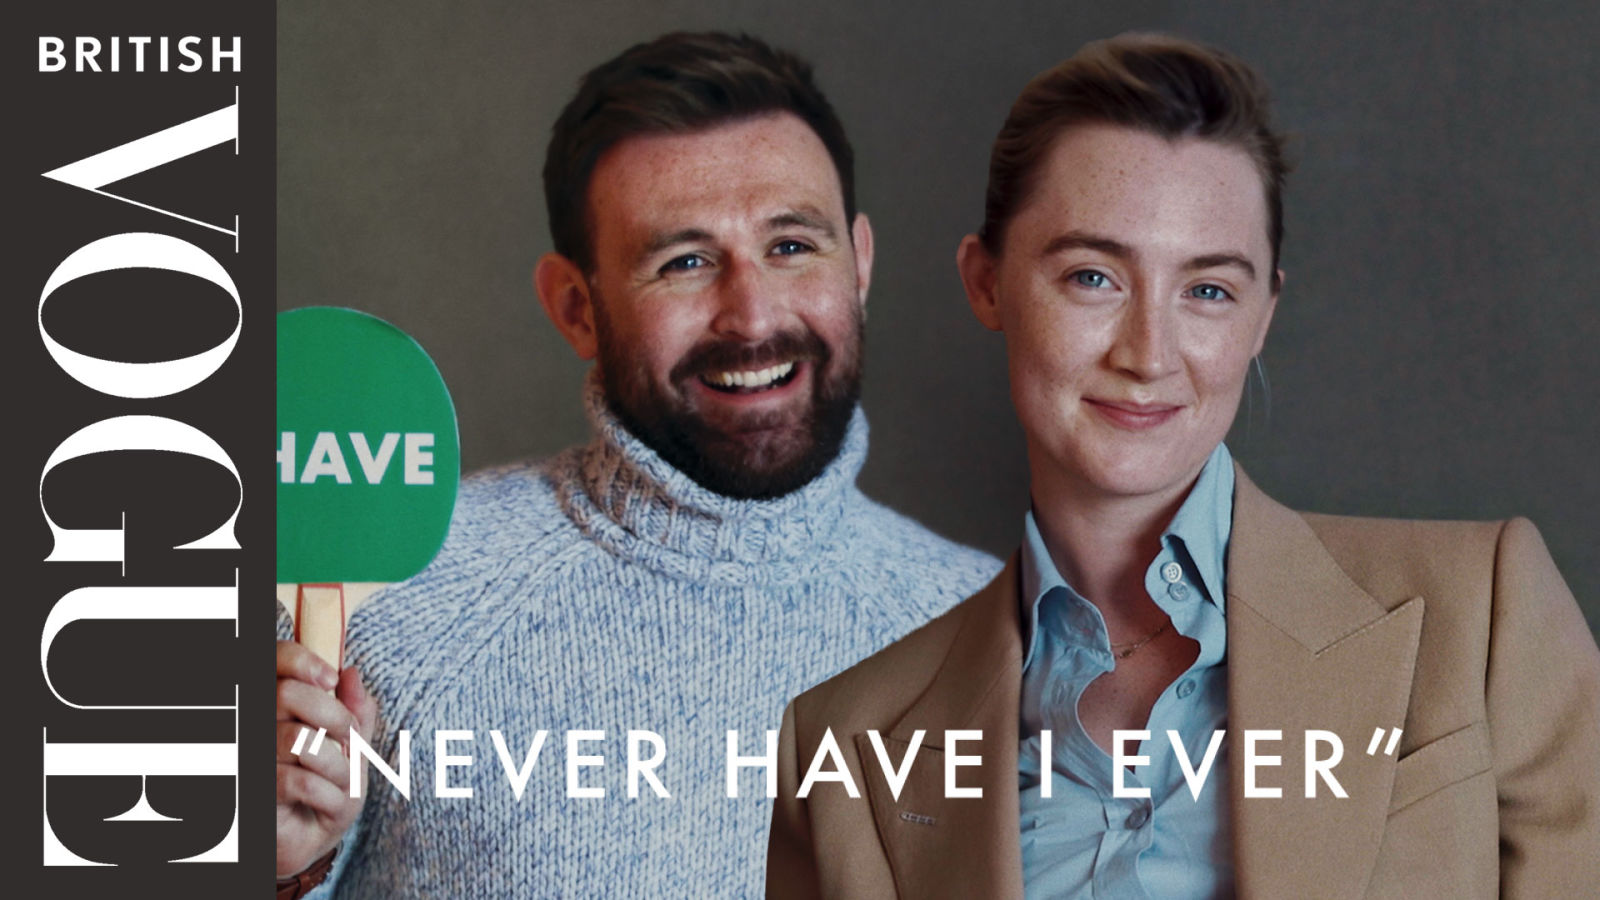 """Saoirse Ronan & James McArdle Play """"Never Have I Ever"""" 